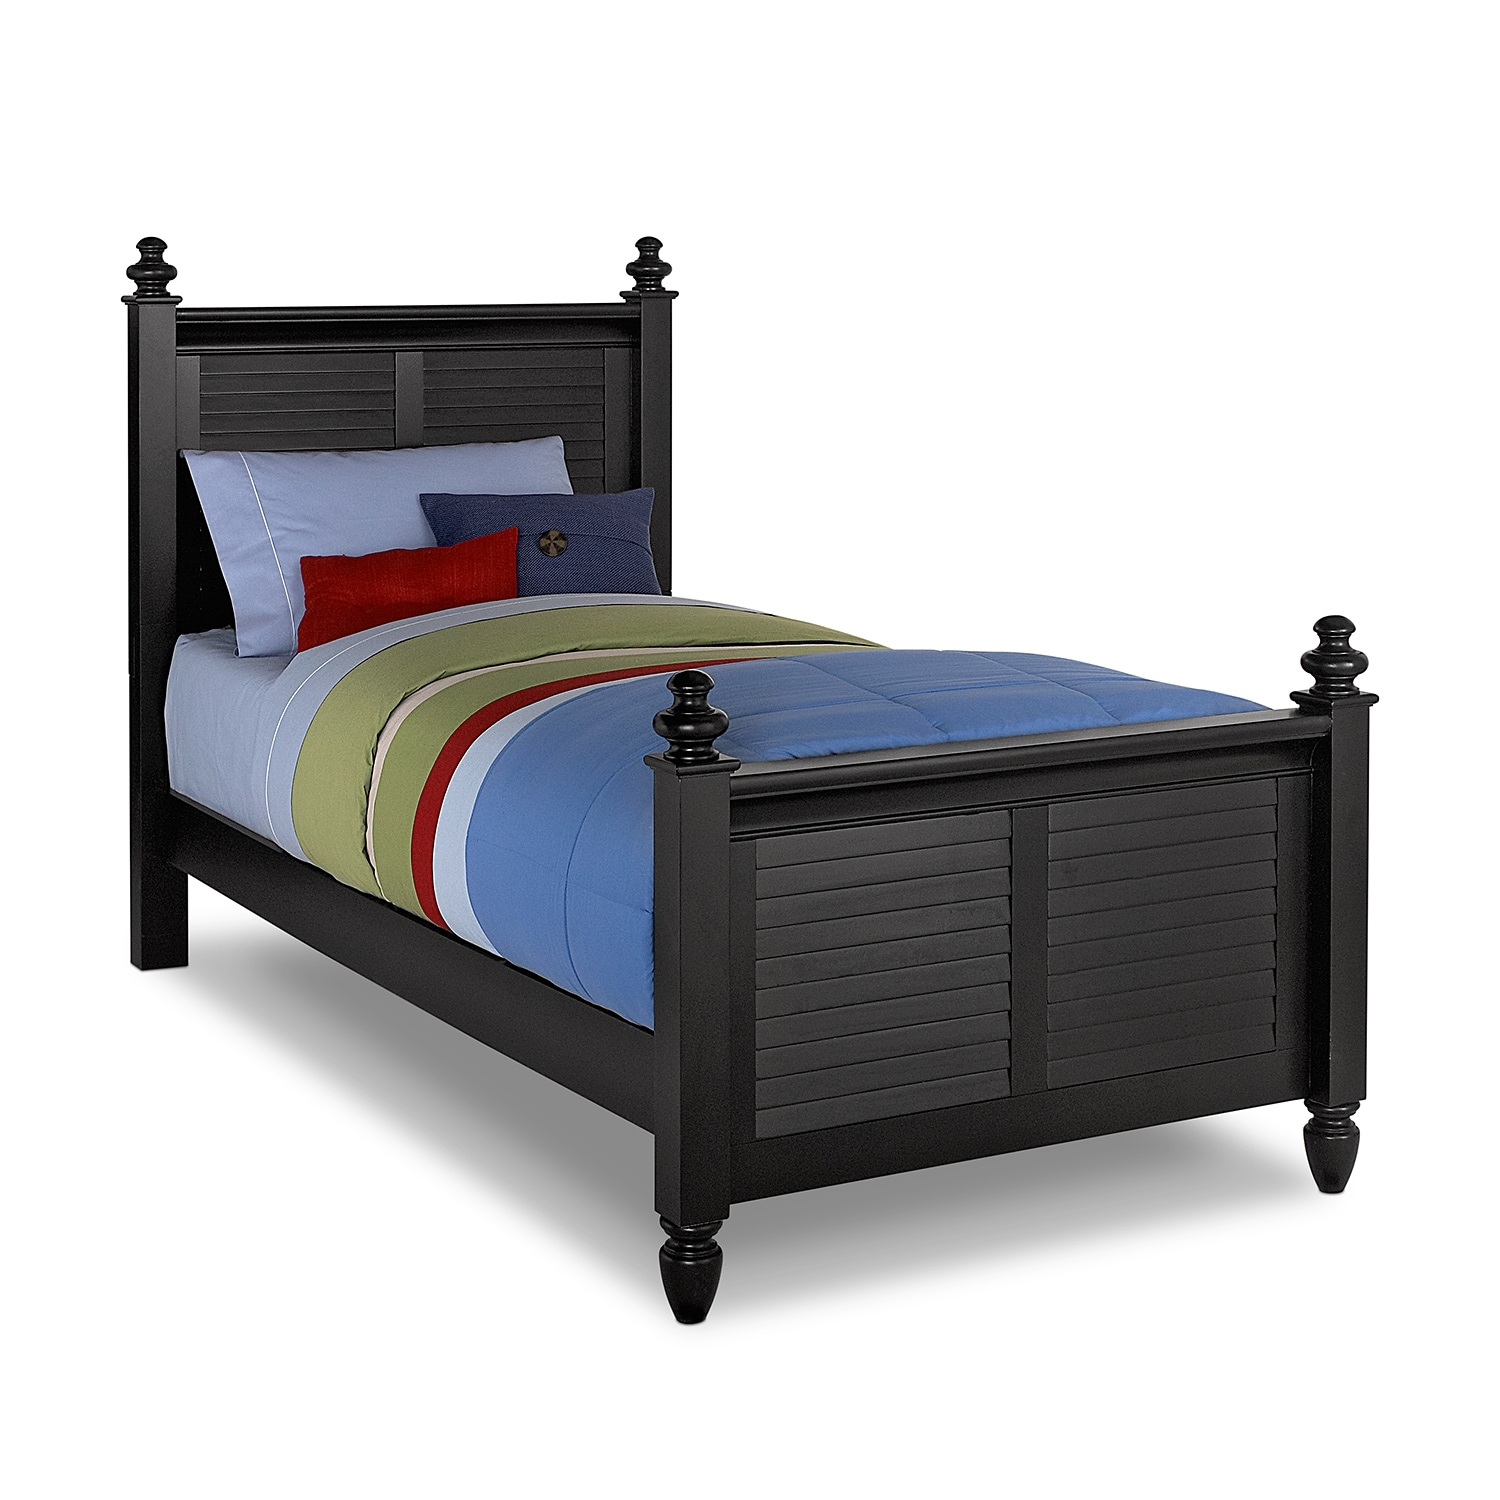 Seaside Twin Bed - Black